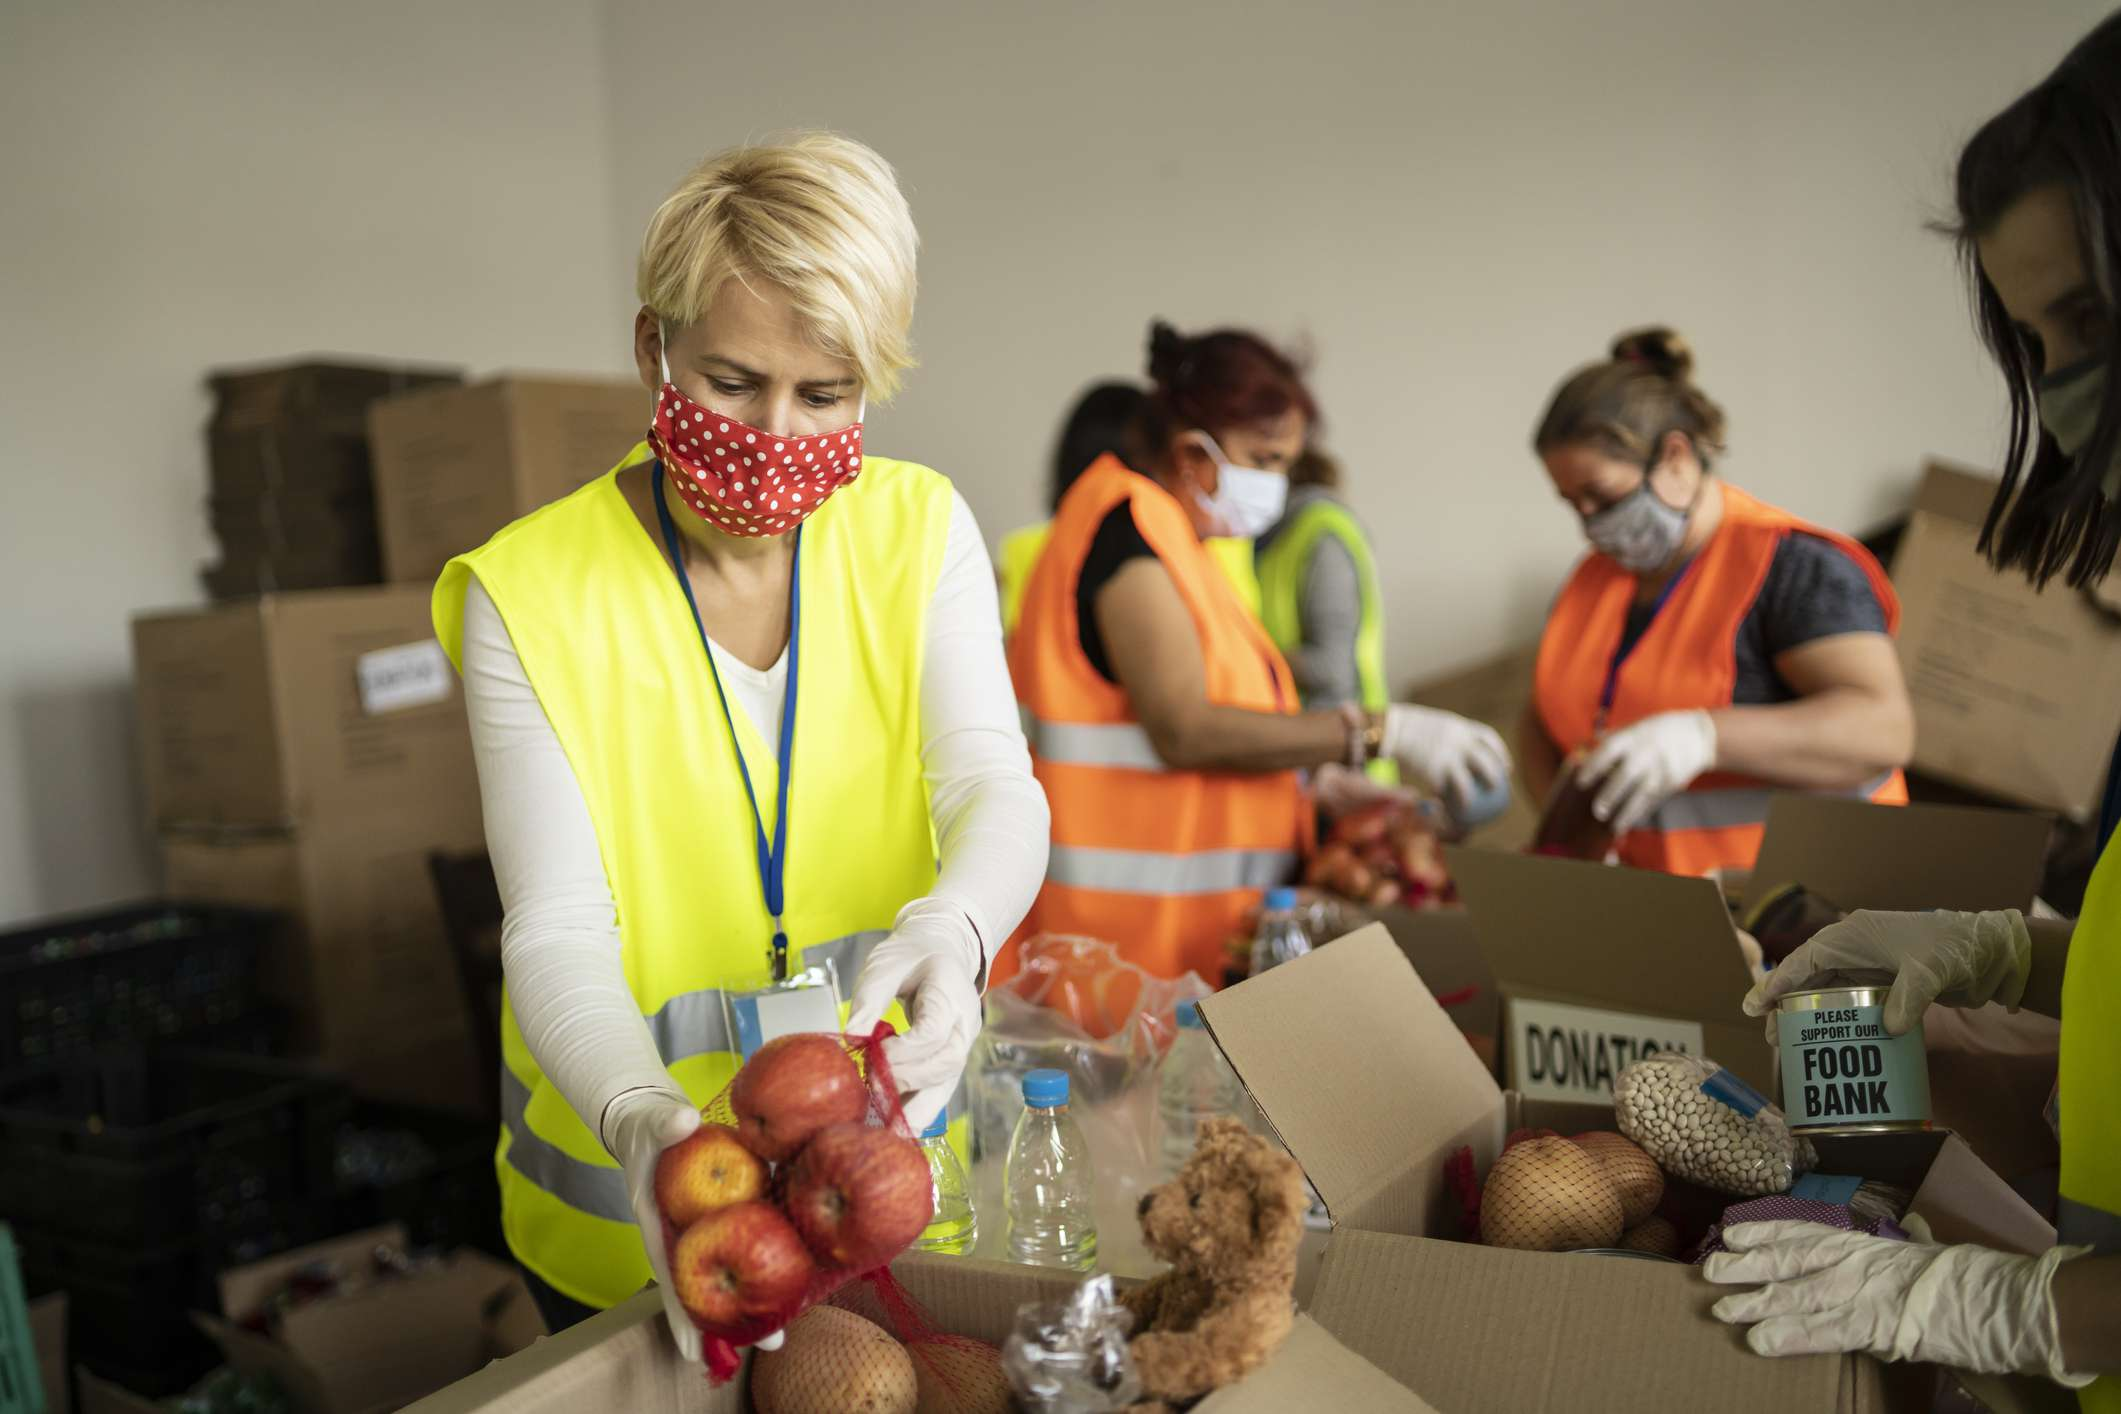 People wearing protective masks and gloves working in a food bank.